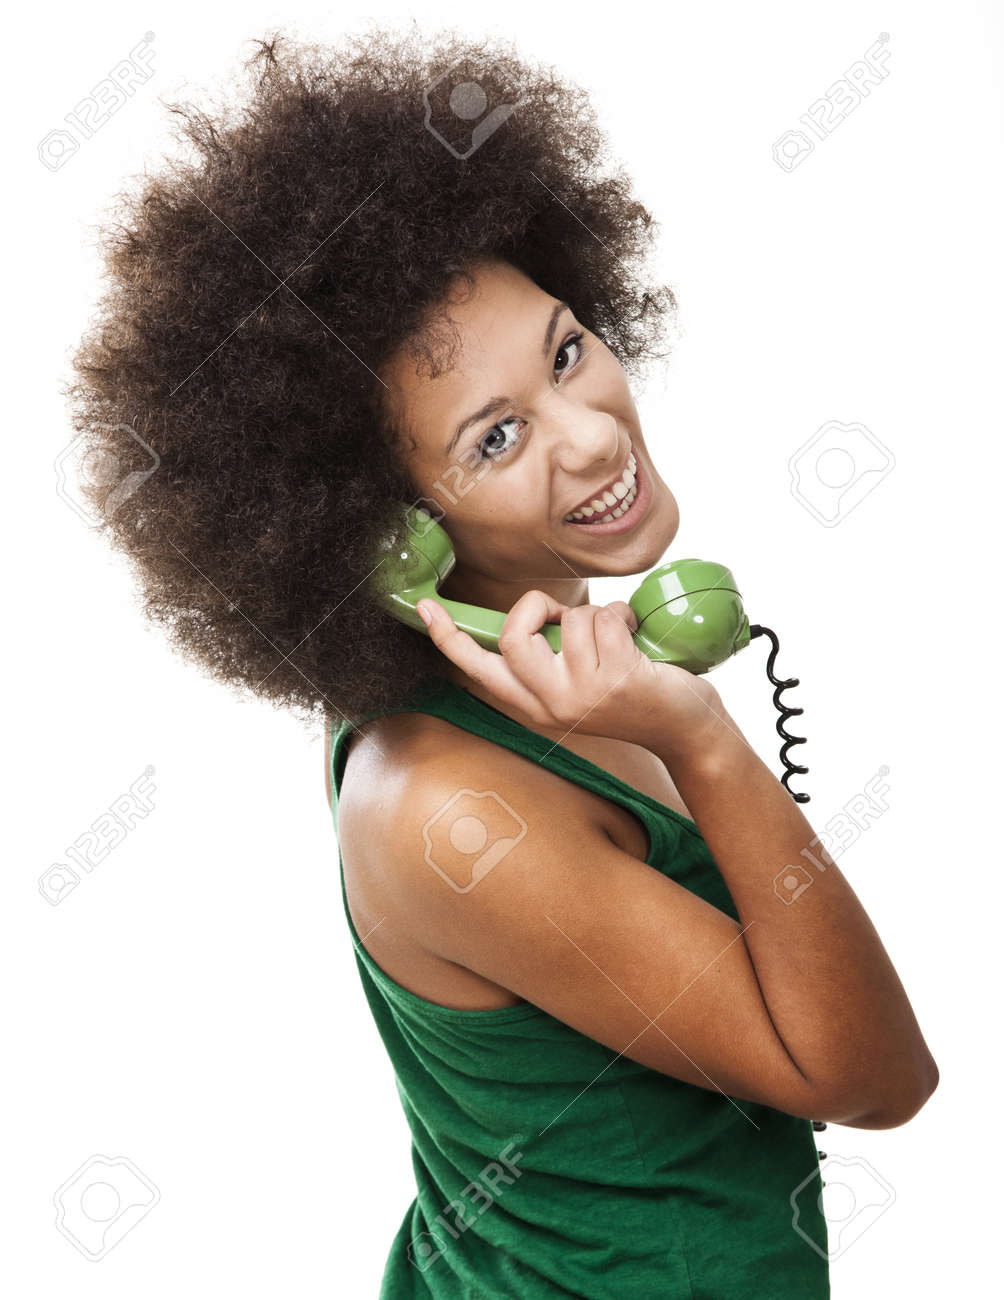 Afro-American young woman answering a call, isolated on white background Stock Photo - 15264722